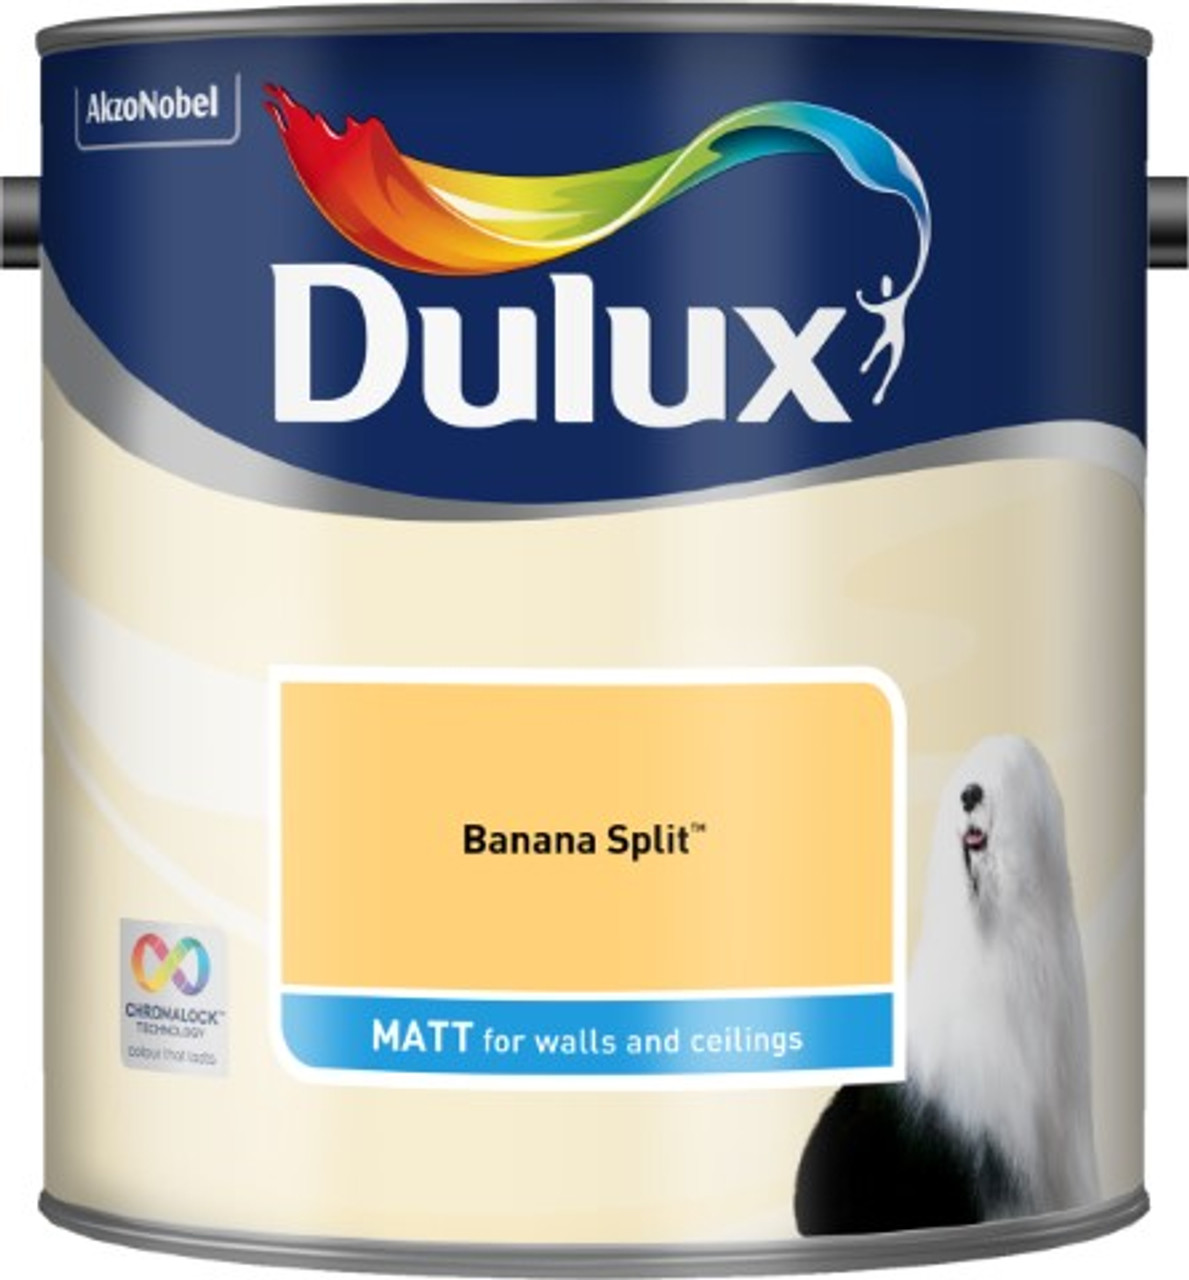 2.5L Dulux Matt Emulsion Banana Split